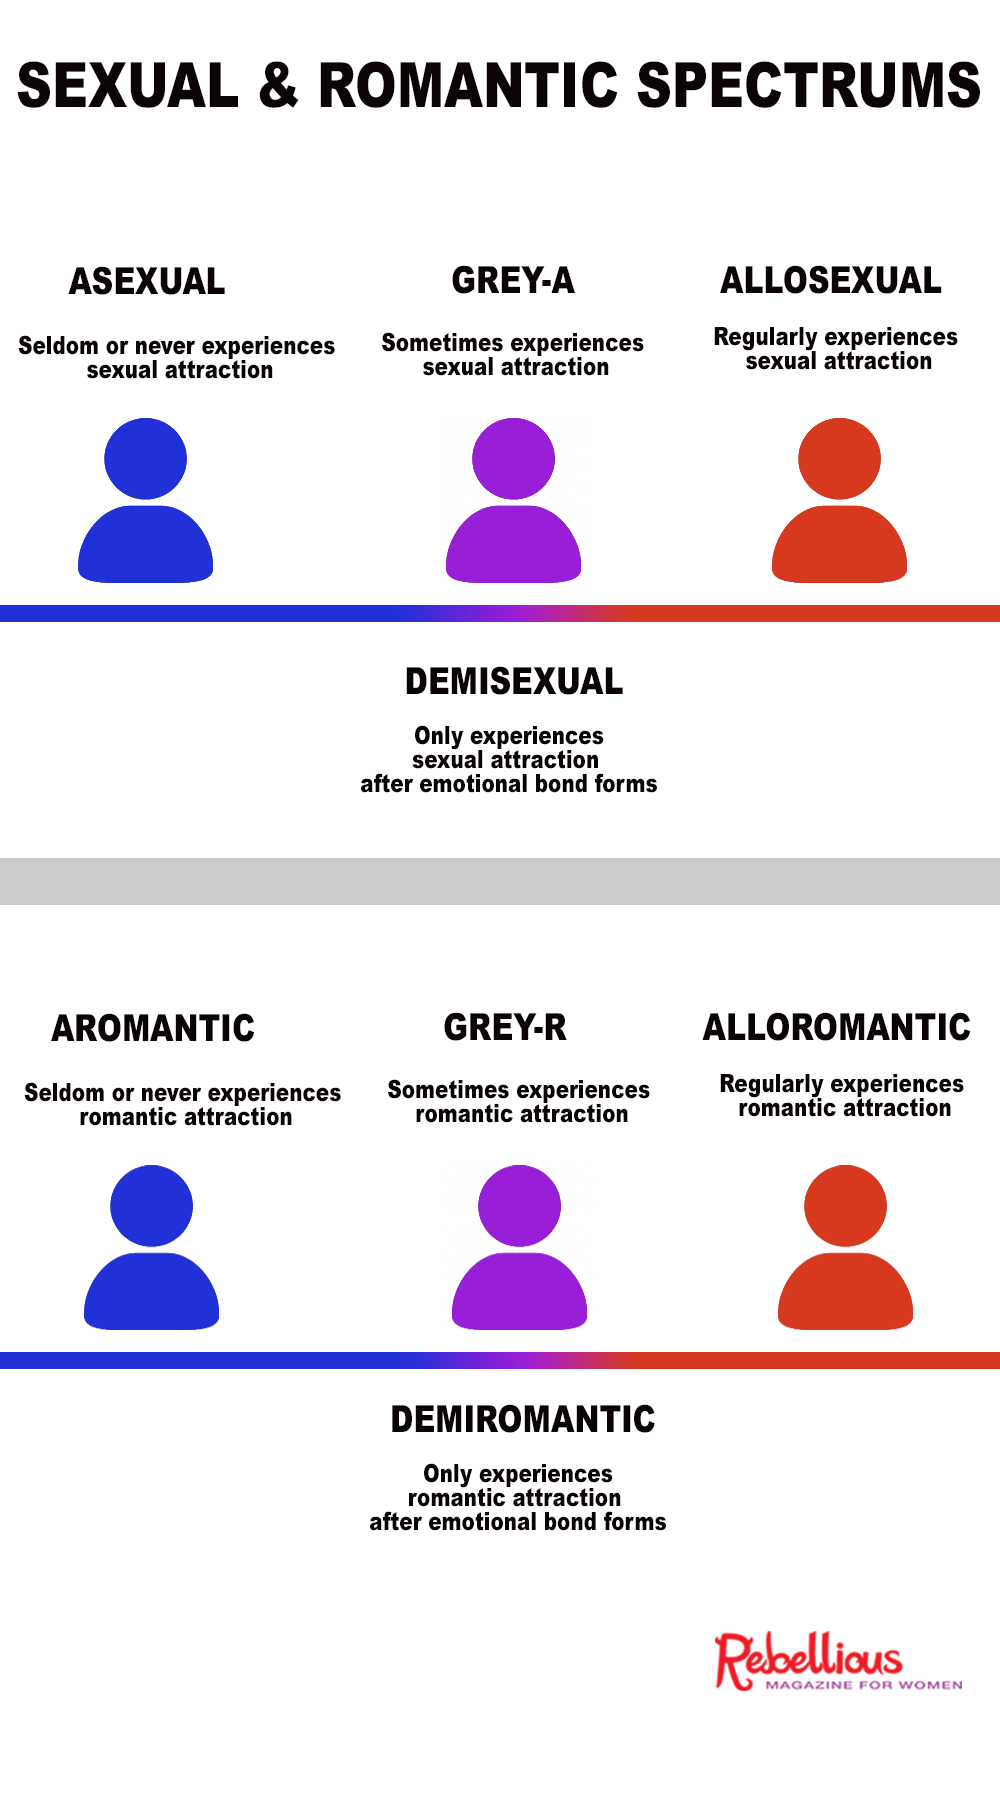 Asexual and aromantic spectrums with allosexual and alloromantic on the other side. Demis and grays in the middle